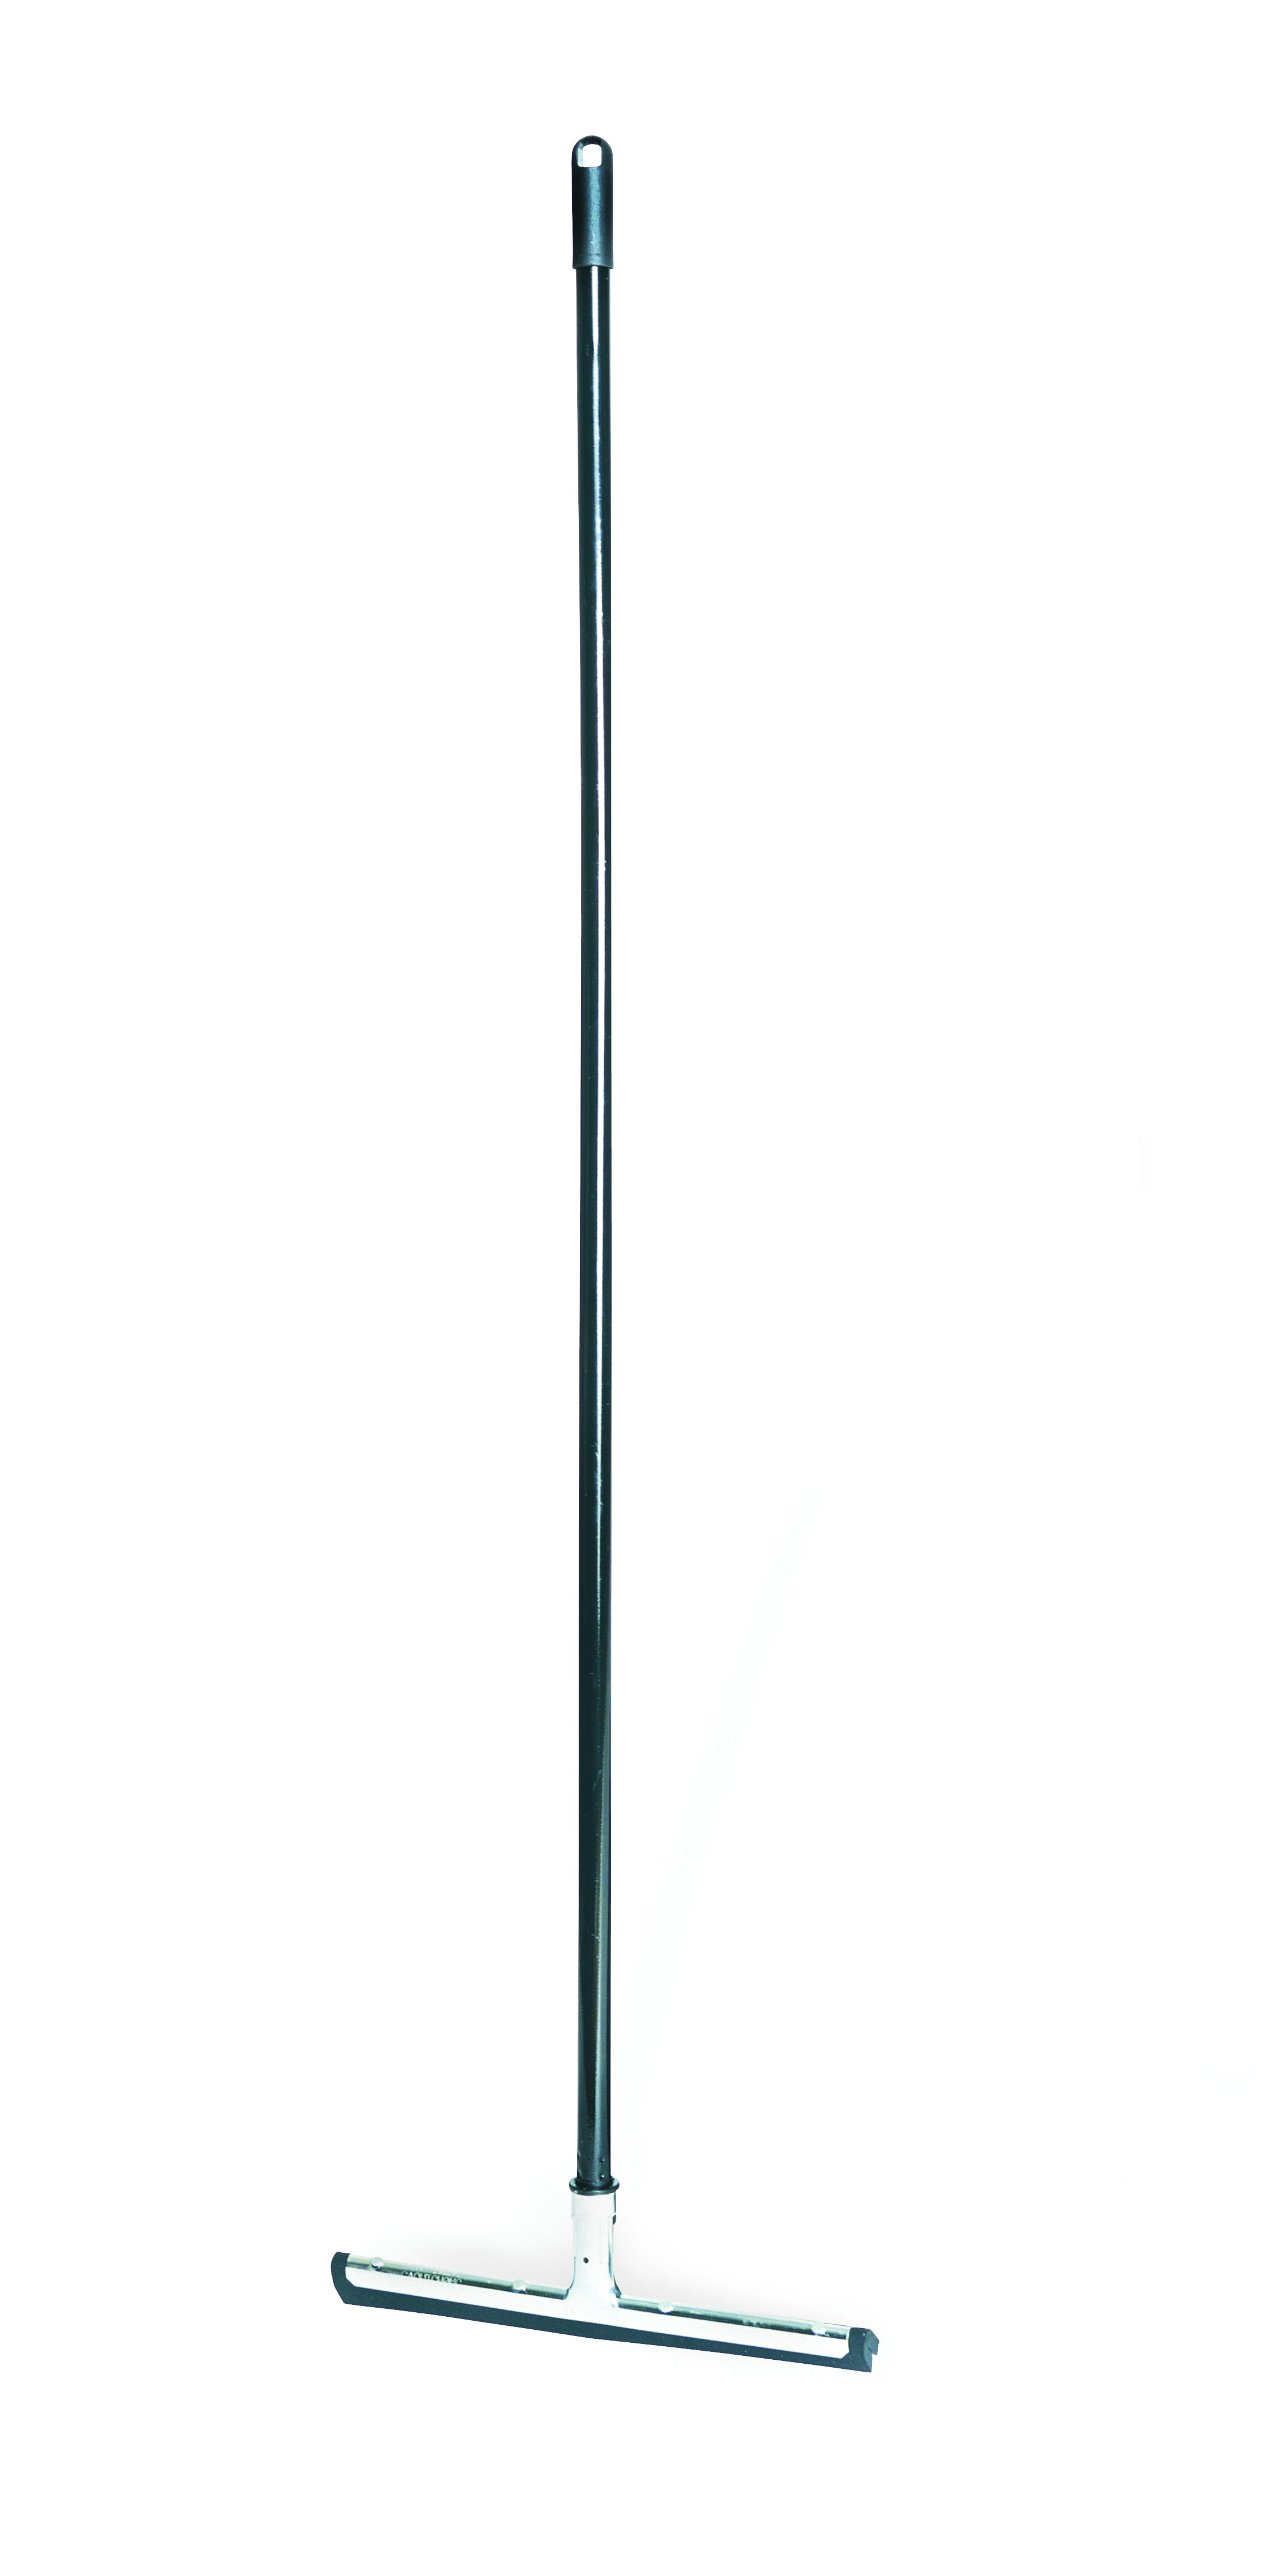 Rubbermaid Commercial Lobby Pro Wet/Dry Cleaning Wand Floor Squeegee, Black